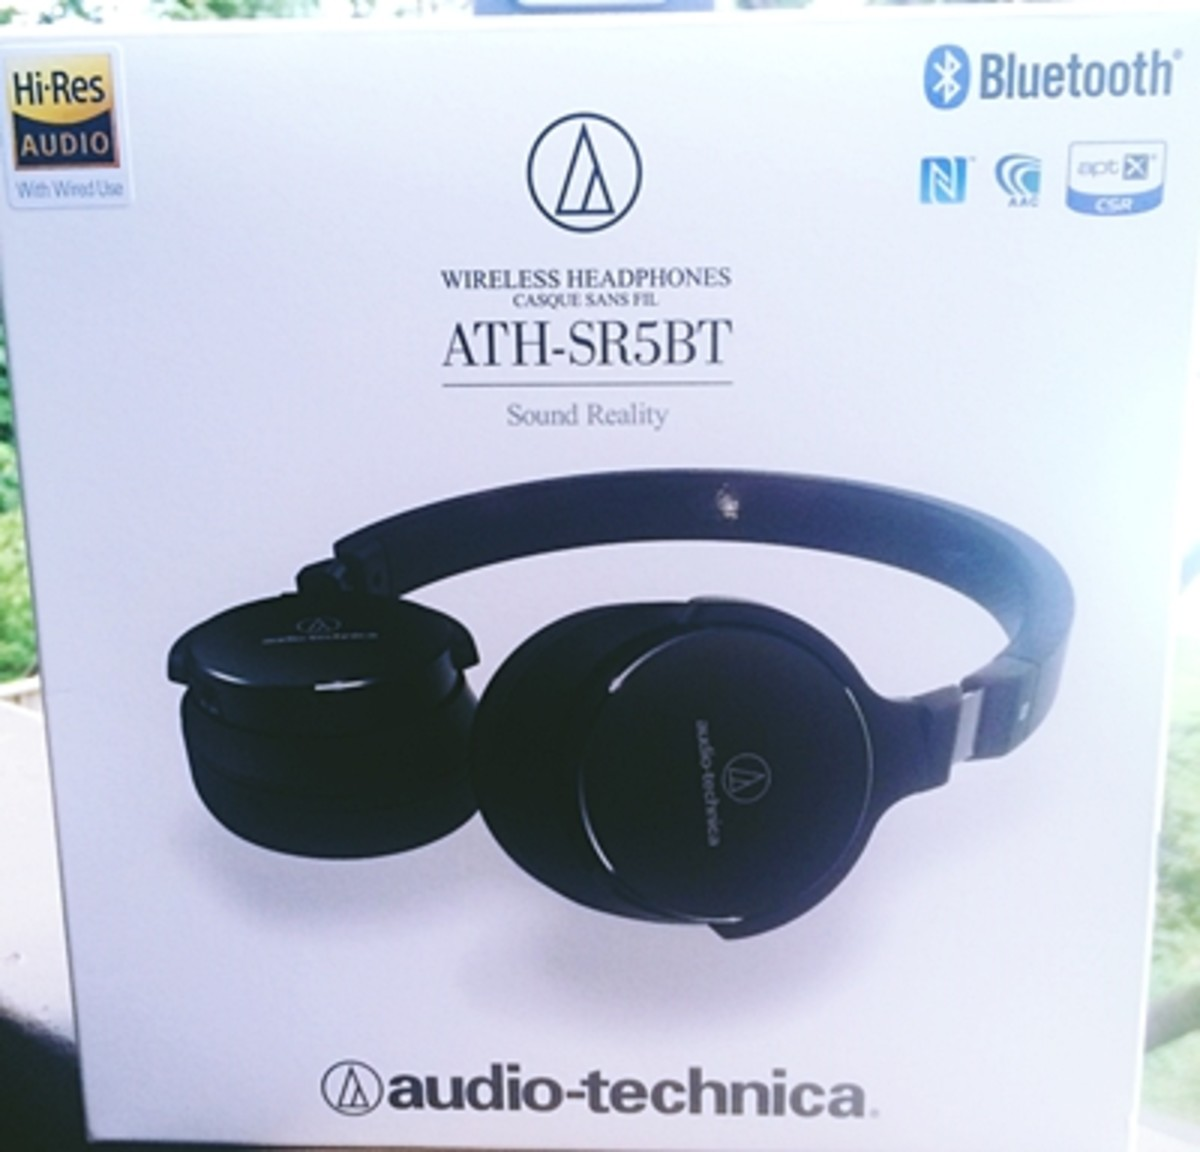 Luxurious, modern sound: A review of audio-techinica wireless headphones ATH-SR5BT